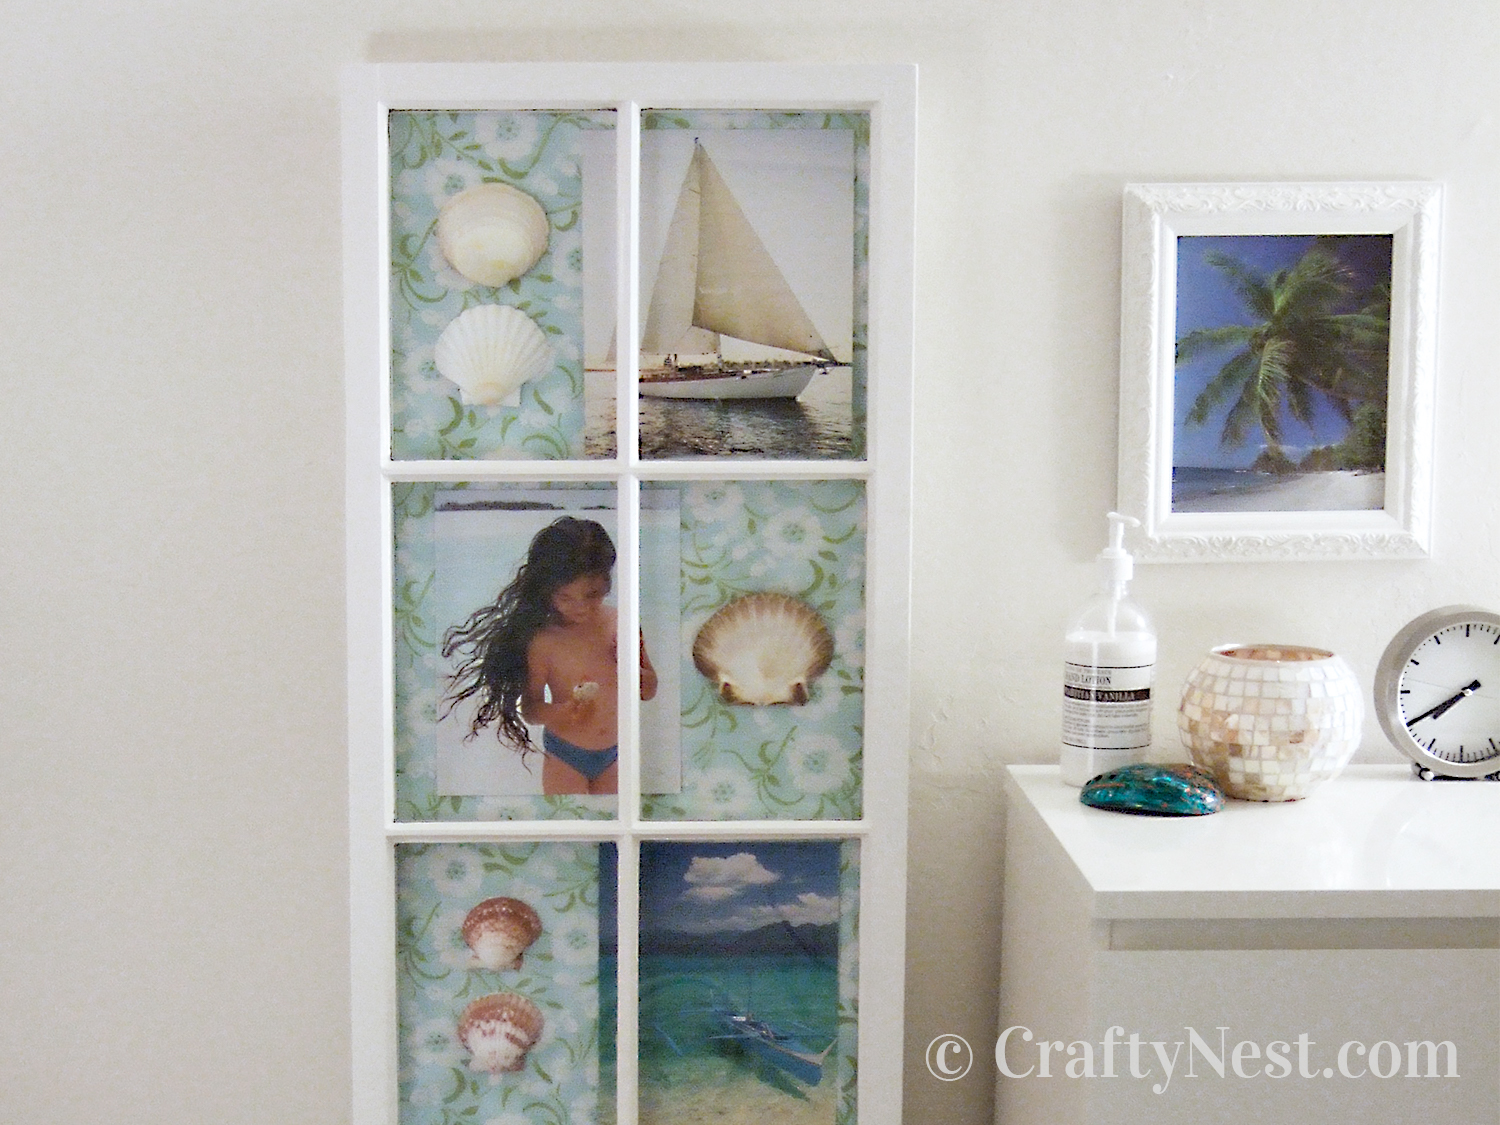 Salvaged window made into a shadowbox, photo